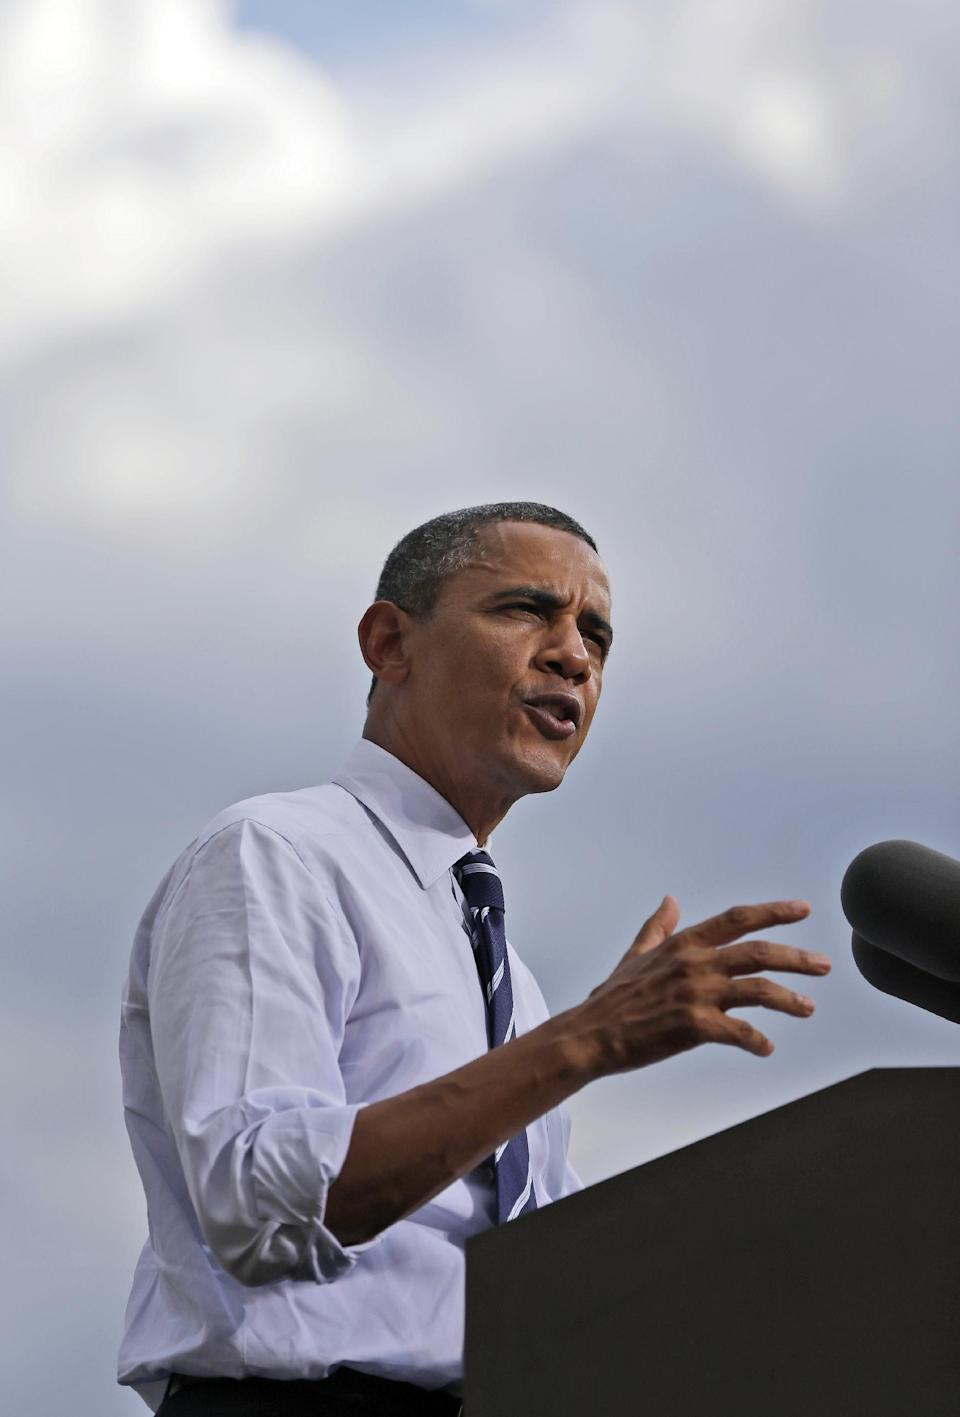 President Barack Obama speaks during a campaign event at Colorado State University, Tuesday, Aug. 28, 2012 in Fort Collins, Colo. (AP Photo/Pablo Martinez Monsivais)